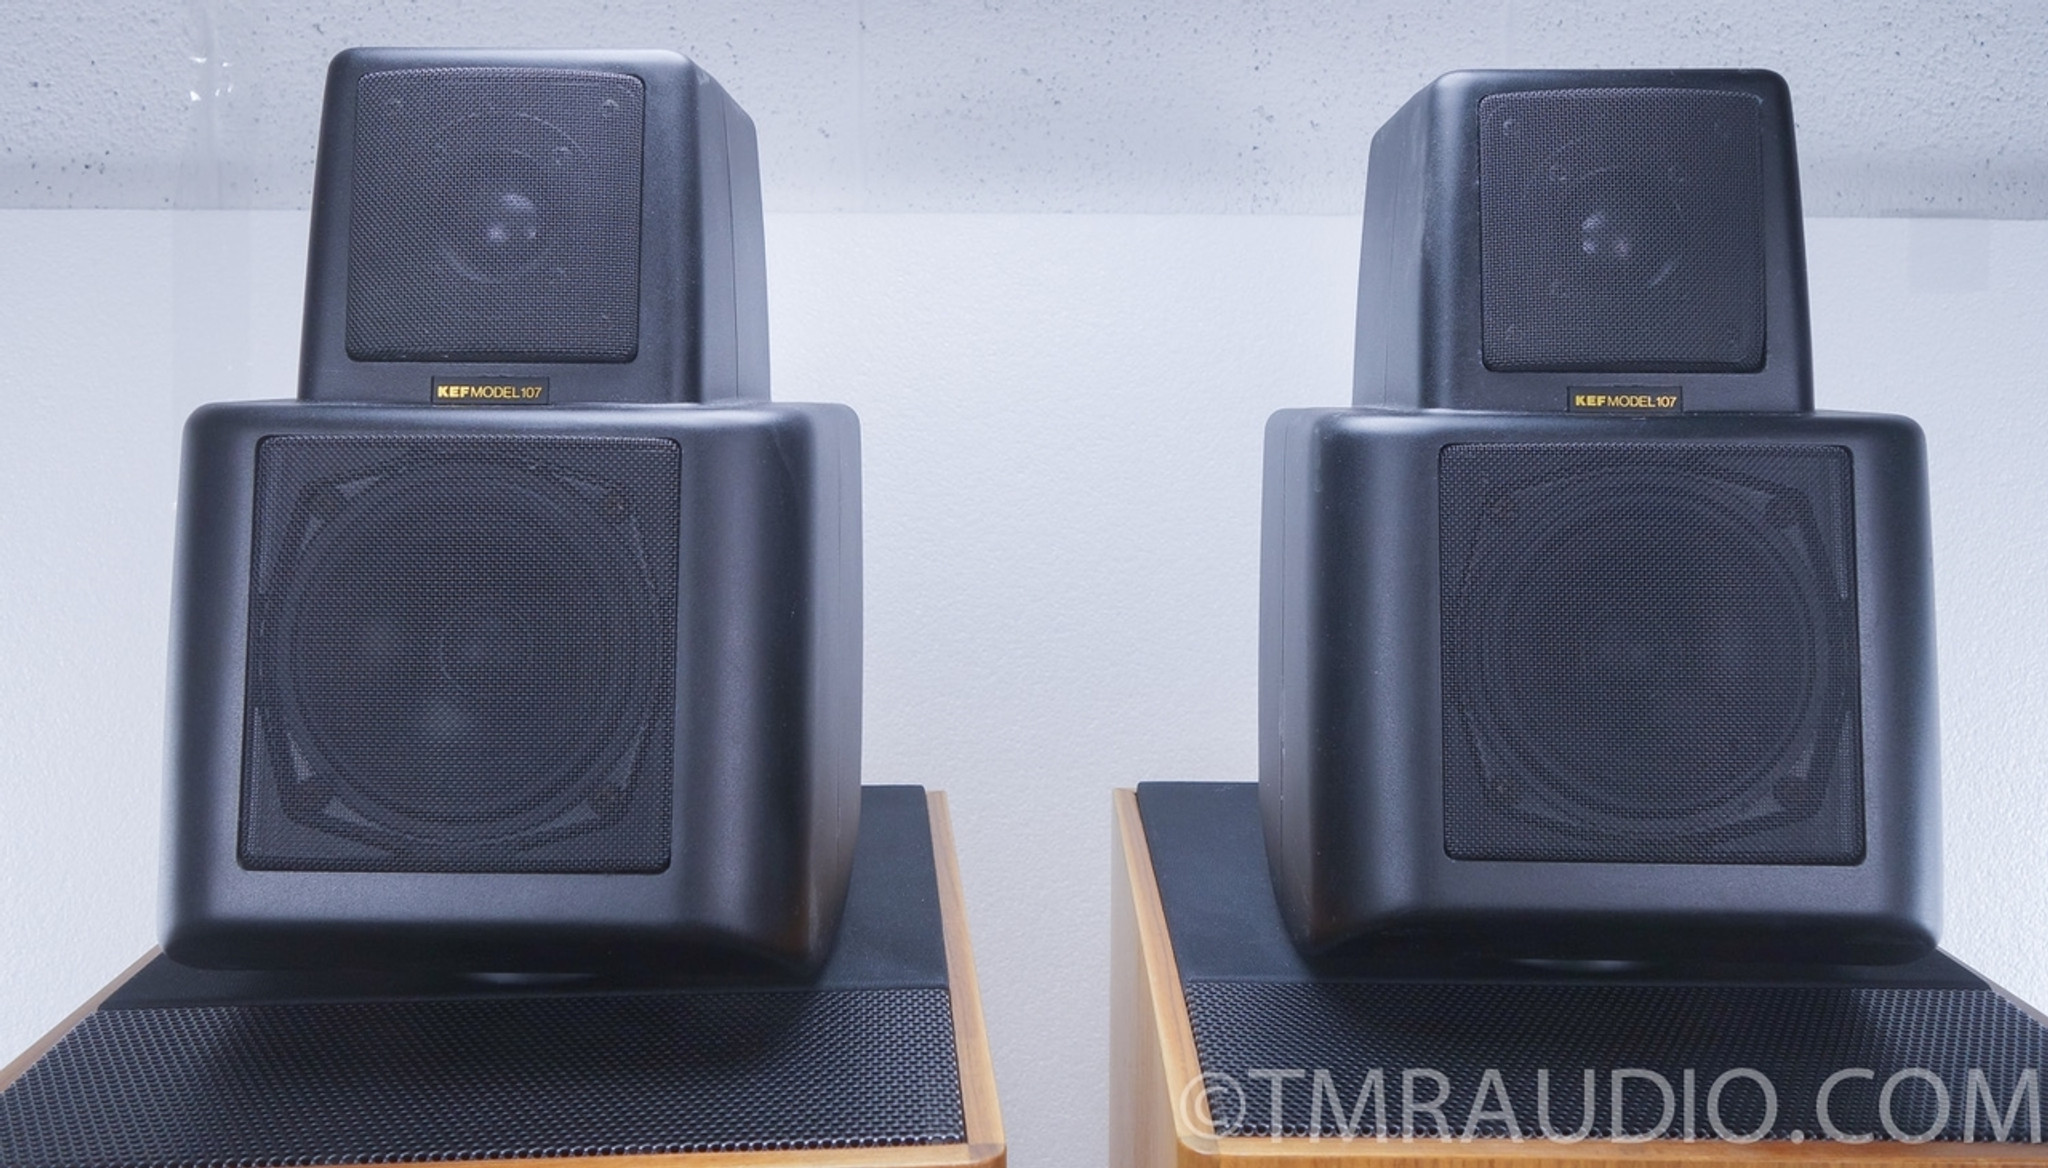 Kef Reference 107 2 Speakers With Kube As Is The Music Room